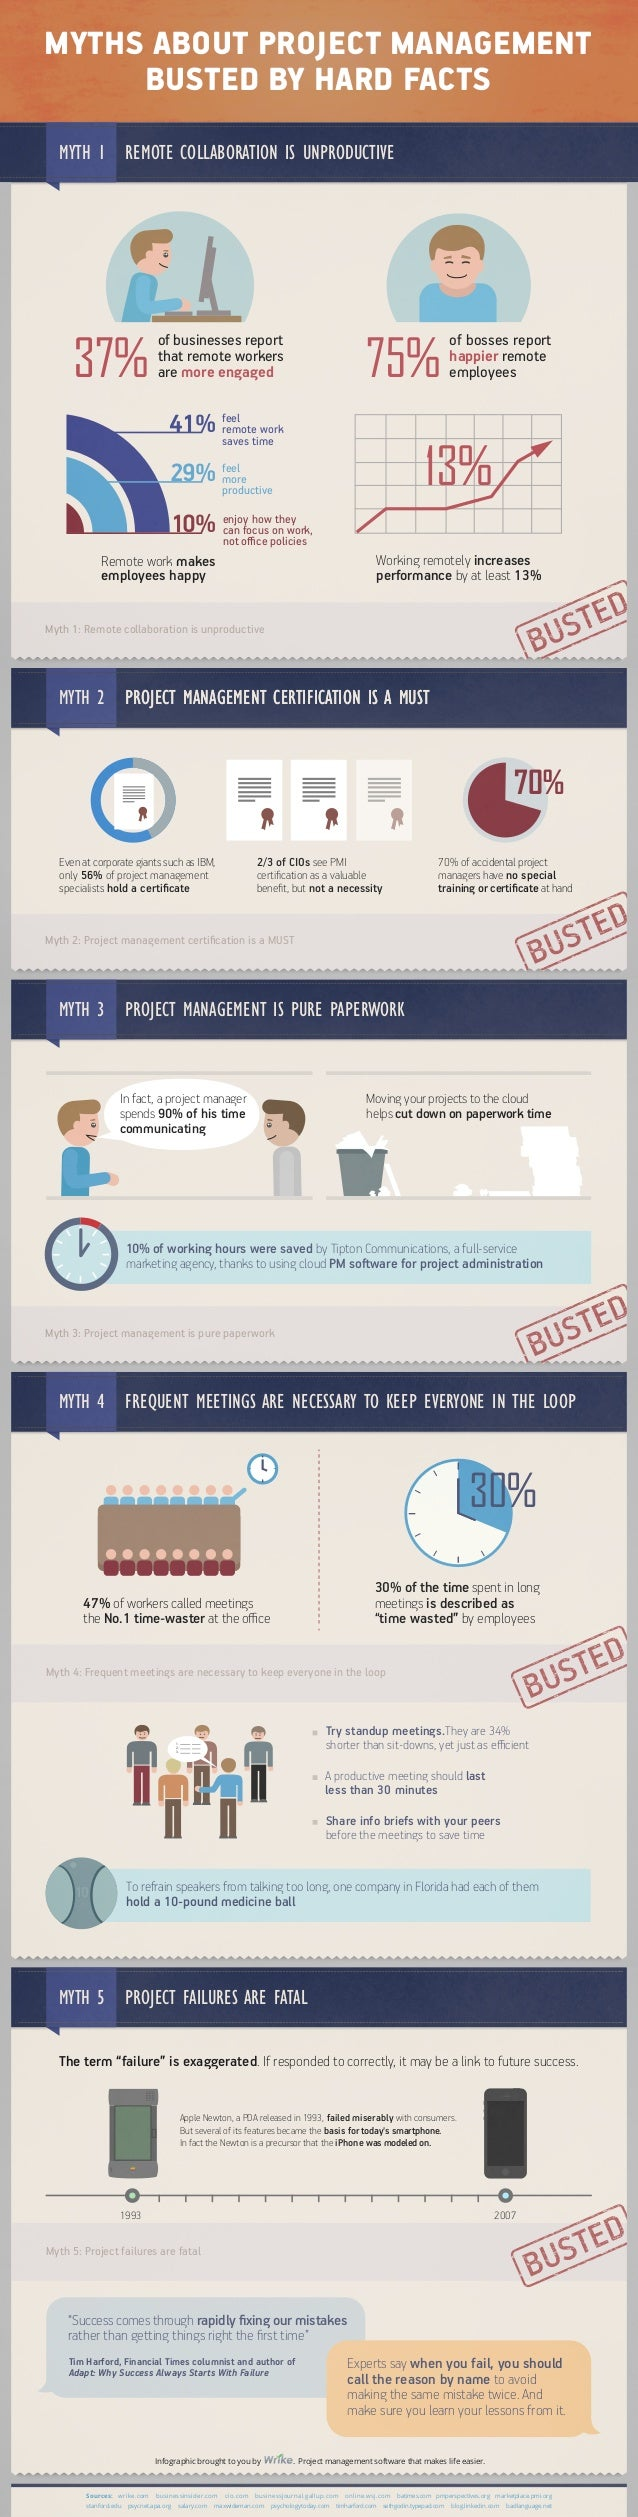 MYTHS ABOUT PROJECT MANAGEMENT BUSTED BY HARD FACTS MYTH 1 REMOTE COLLABORATION IS UNPRODUCTIVE  37%  75%  of businesses r...